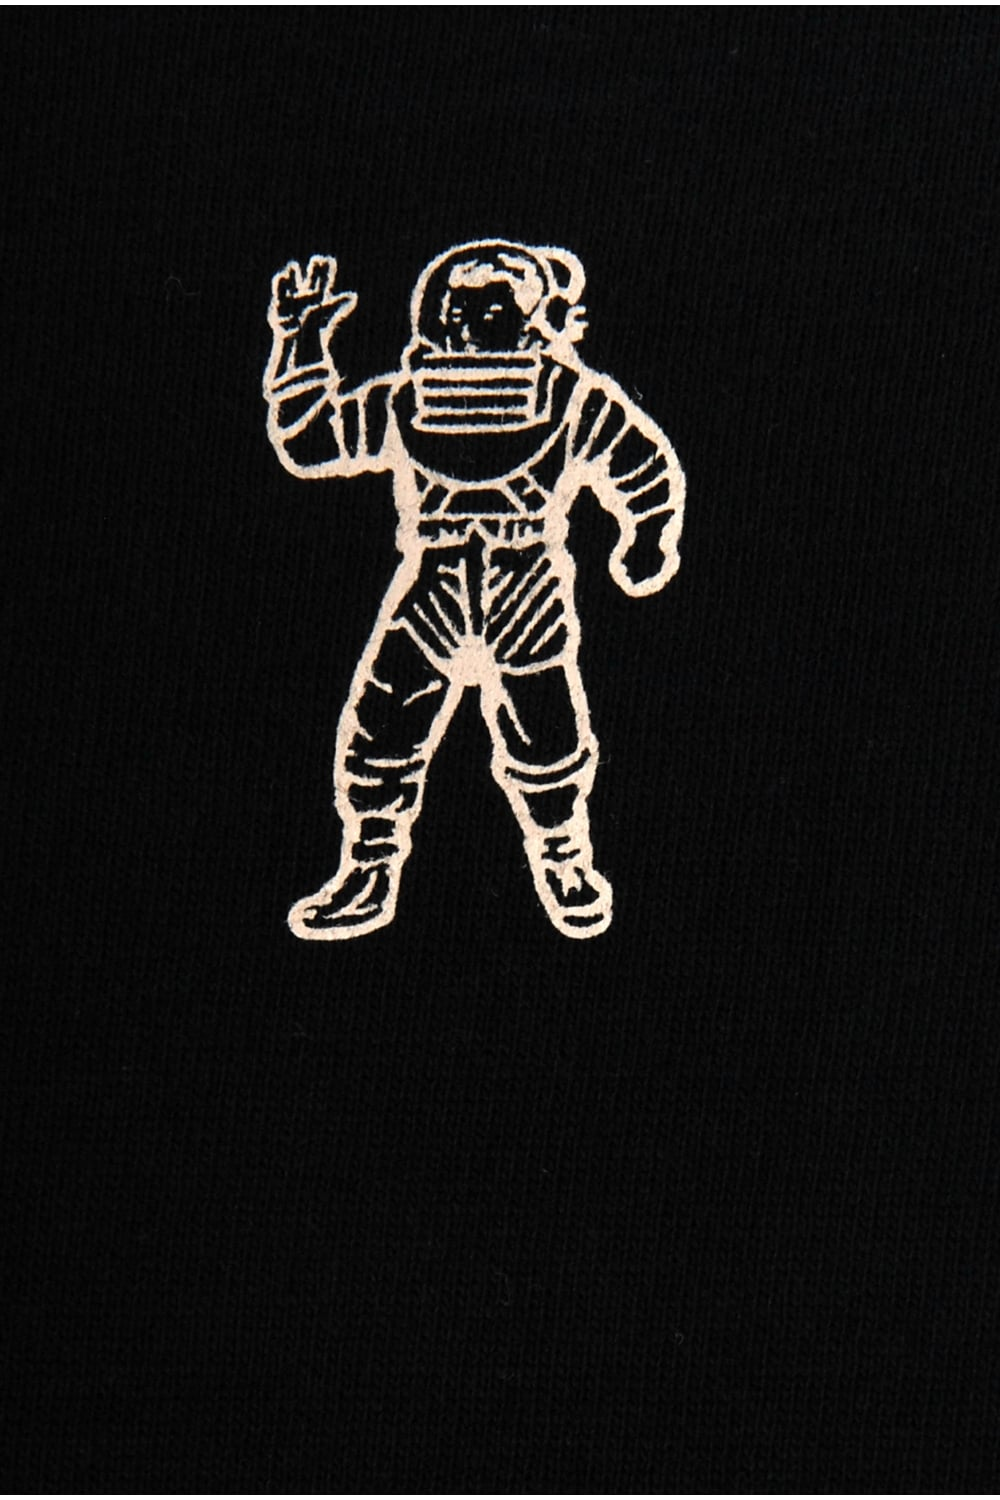 billionaire boys club logo - photo #12